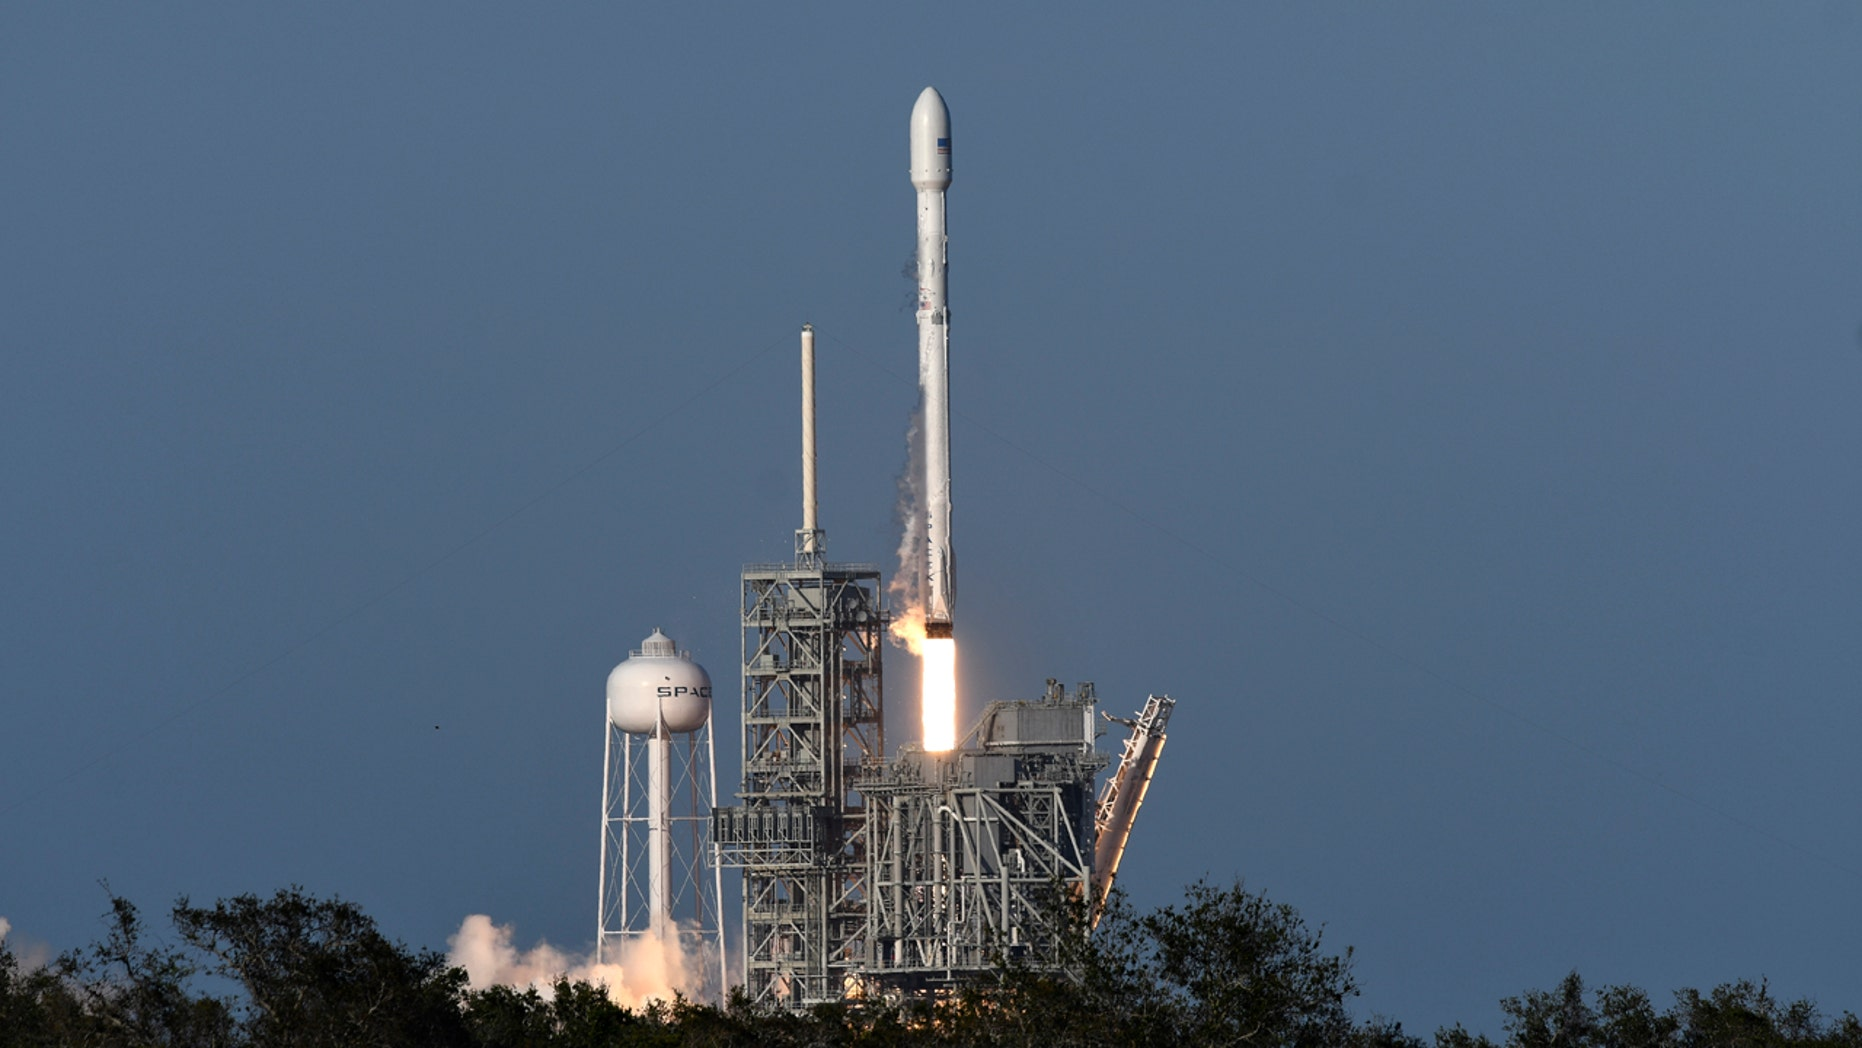 A SpaceX Falcon 9 rocket lifts off from Kennedy Space Center in Cape Canaveral, Fla., Thursday, March 30, 2017.